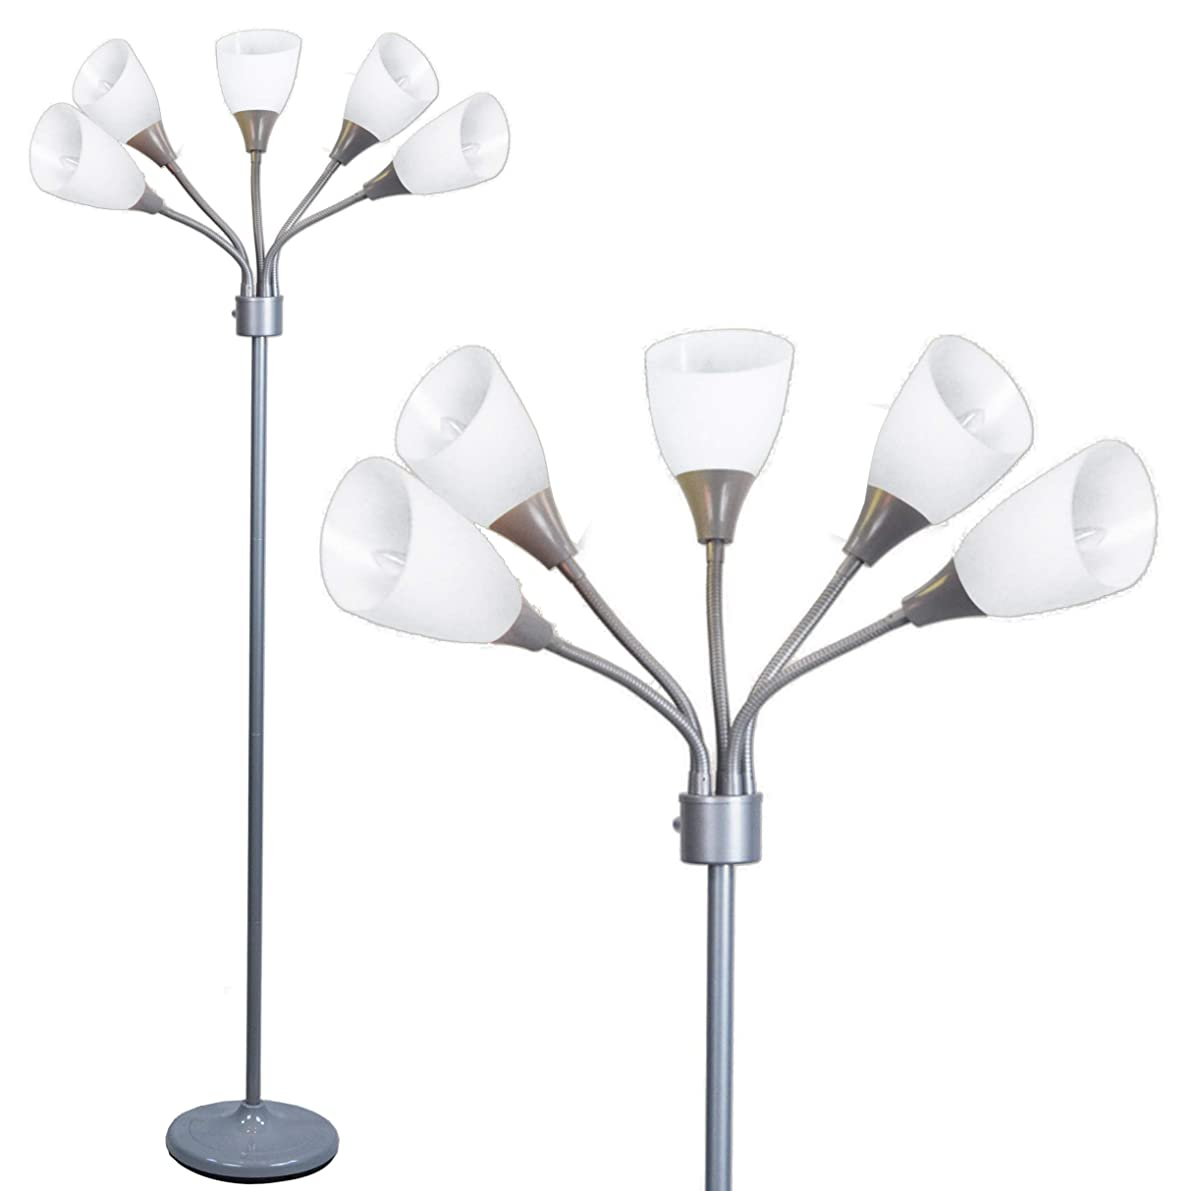 Floor Lamp by Light Accents - Medusa Grey Standing Lamp with White Acrylic Shades